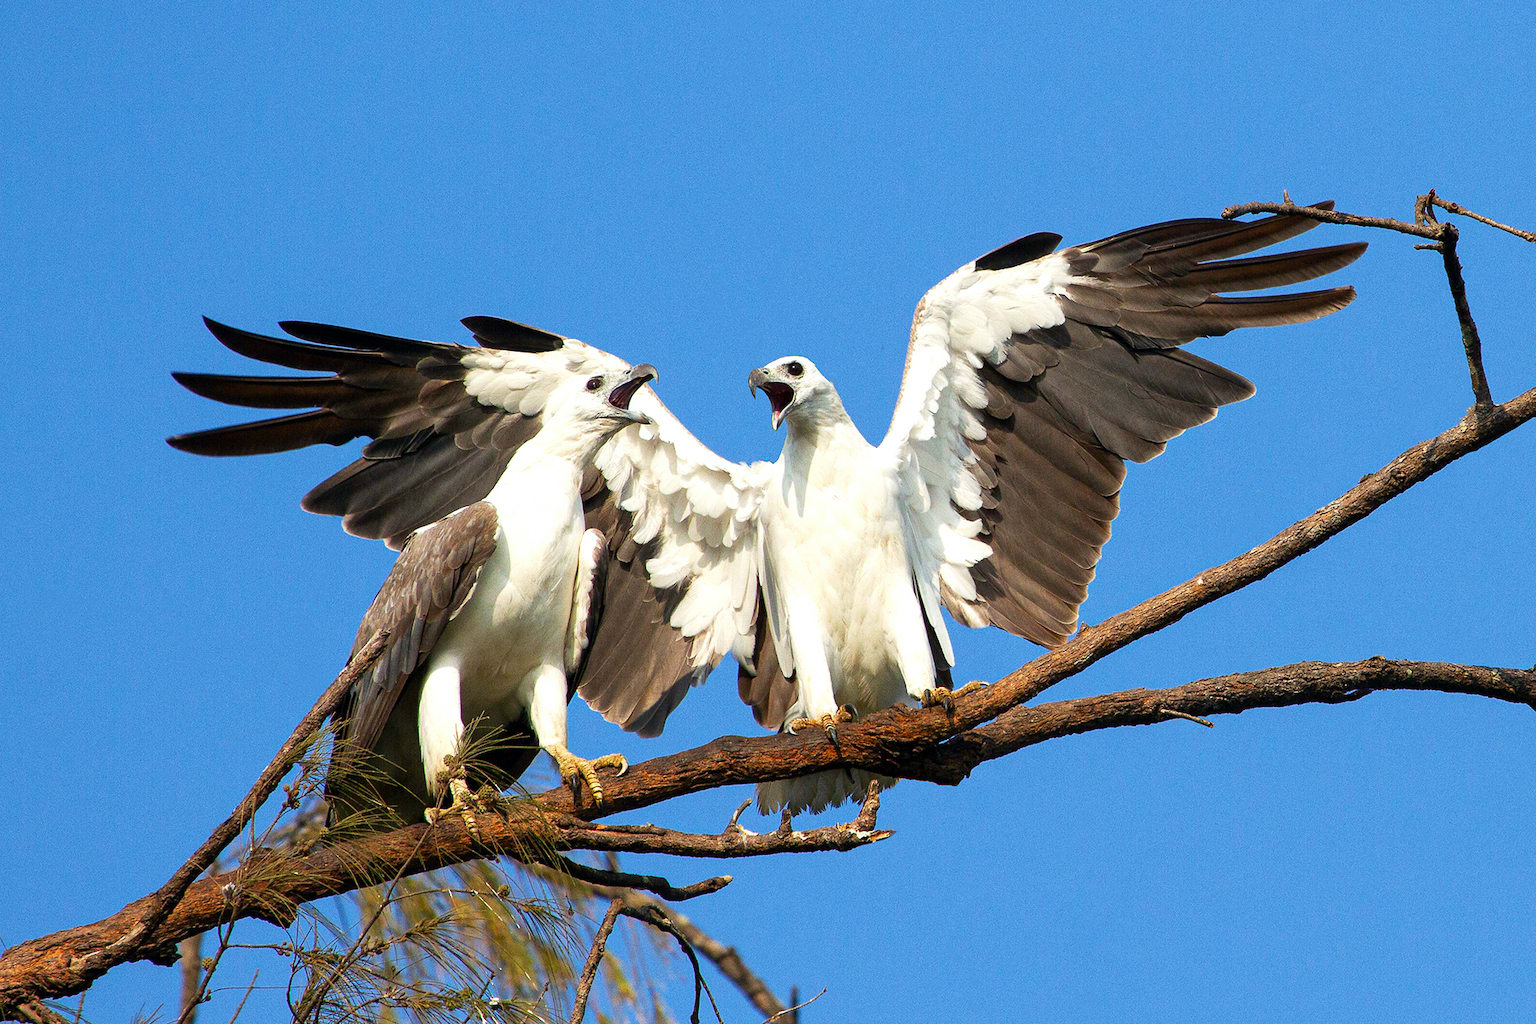 The white-bellied sea-eagle (Haliaeetus leucogaster) rules the coastlines of South Asia, Southeast Asia, and Australia. An entirely white underbody, massive wings (held in a V-shape when gliding) and loud honking calls make it unmistakable. It mainly hunts aquatic animals such as sea snakes, turtles, and fish from near the surface, but is also a known kleptoparasite, stealing food from Brahminy kites, ospreys, gulls, and other white-bellied sea-eagles.